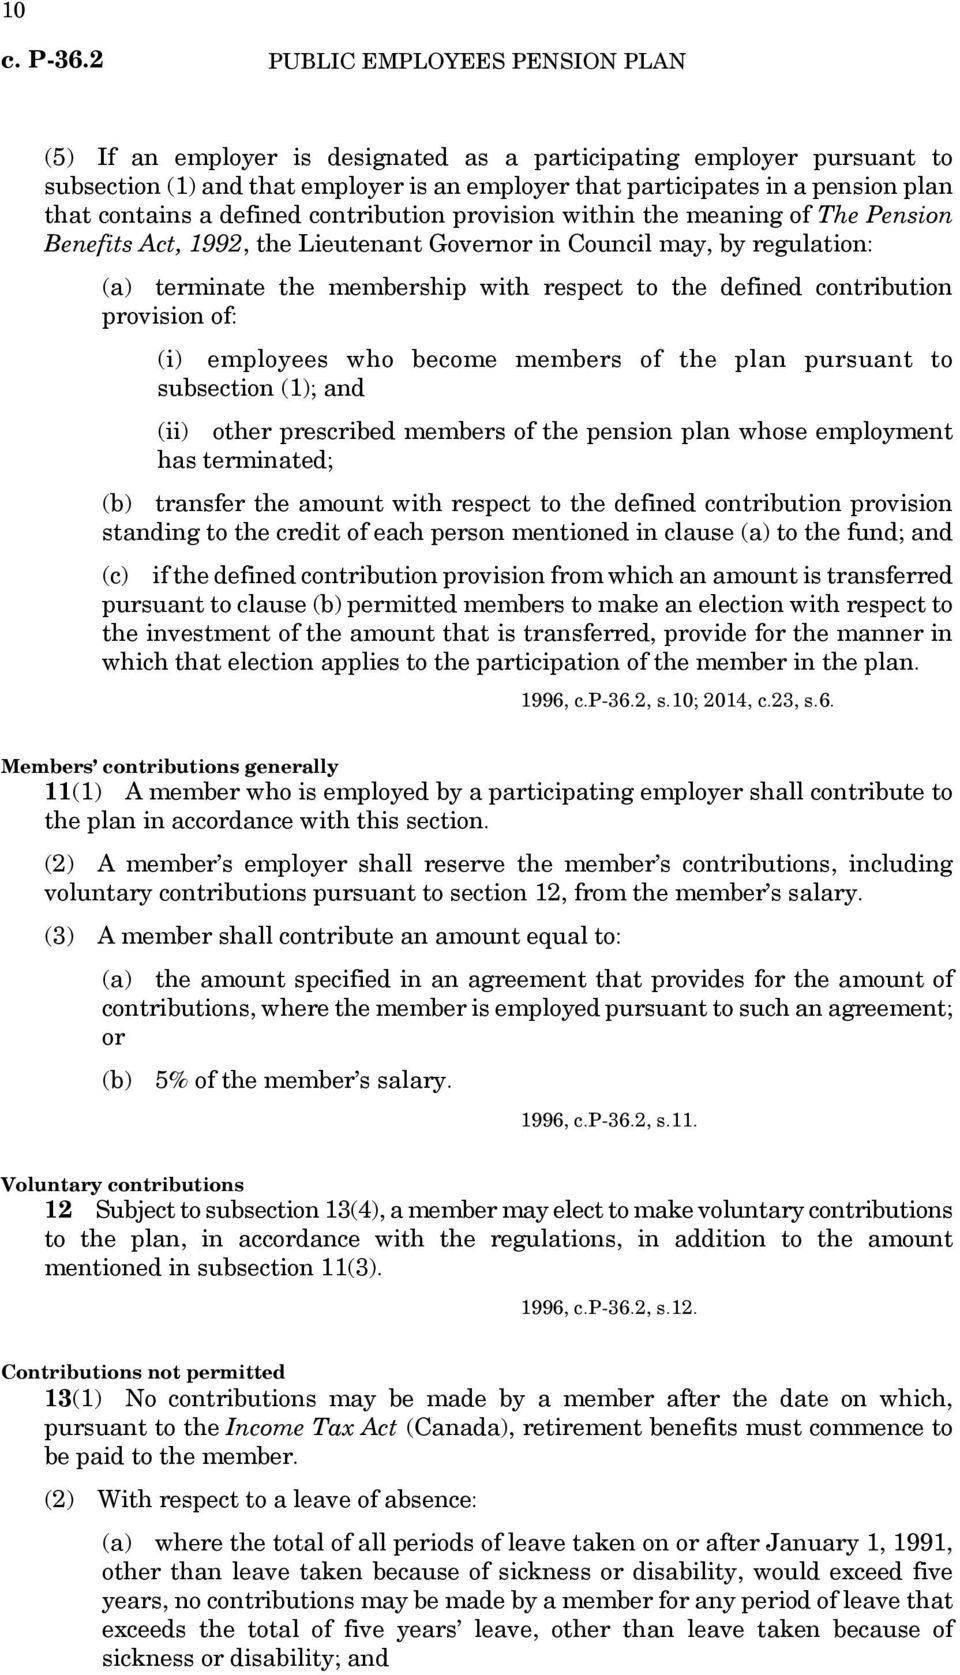 of: (i) employees who become members of the plan pursuant to subsection (1); and (ii) other prescribed members of the pension plan whose employment has terminated; (b) transfer the amount with